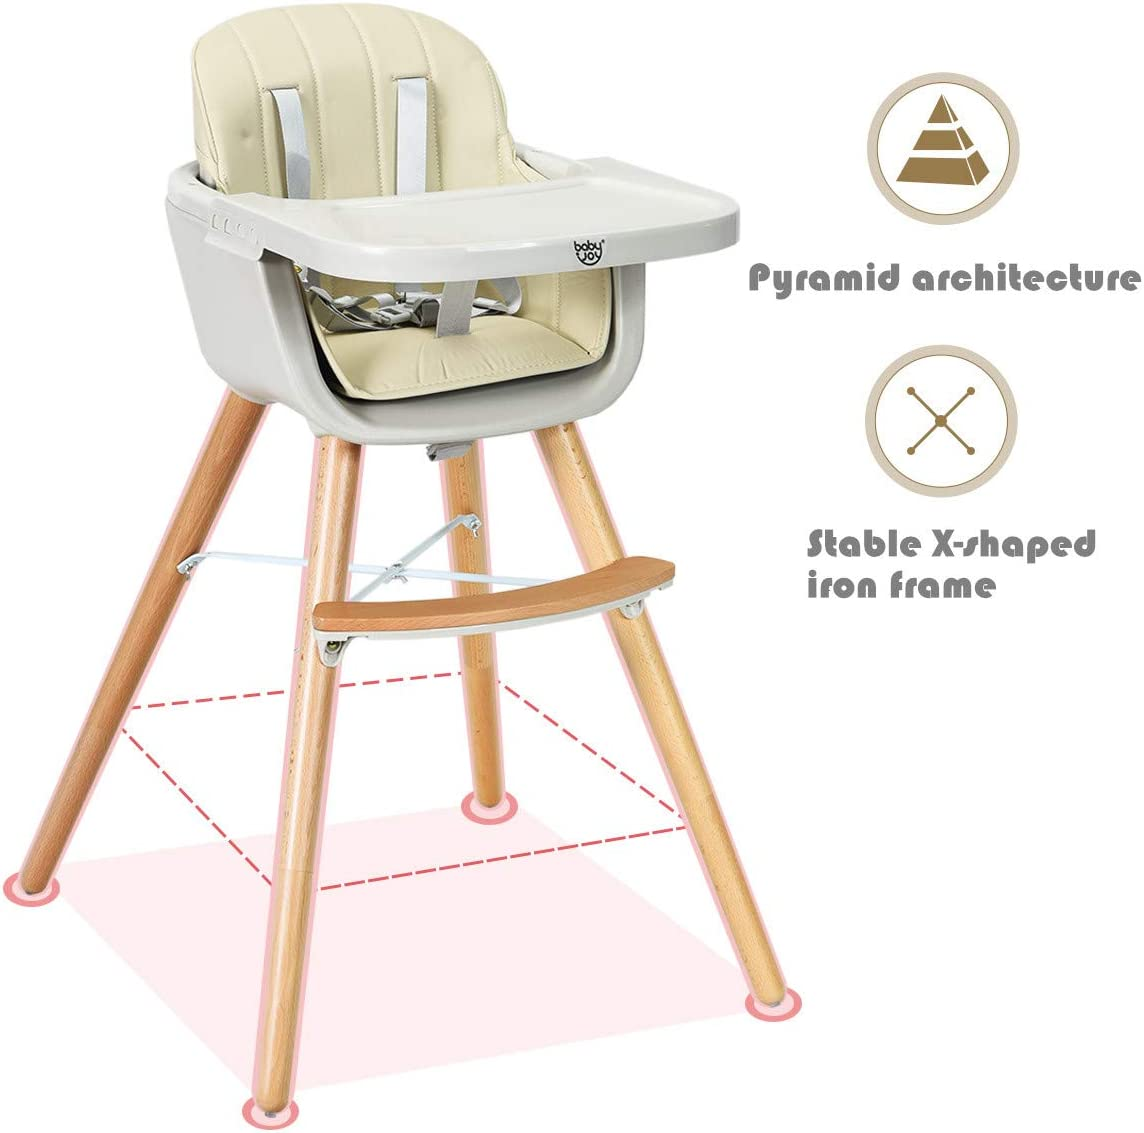 5-Point Seat Belt Multi-Functional Dining Chair with Adjustable Legs and Tray Infants Detachable Footrest COSTWAY Convertible High Chair Wooden Feeding Chair for Baby Toddlers